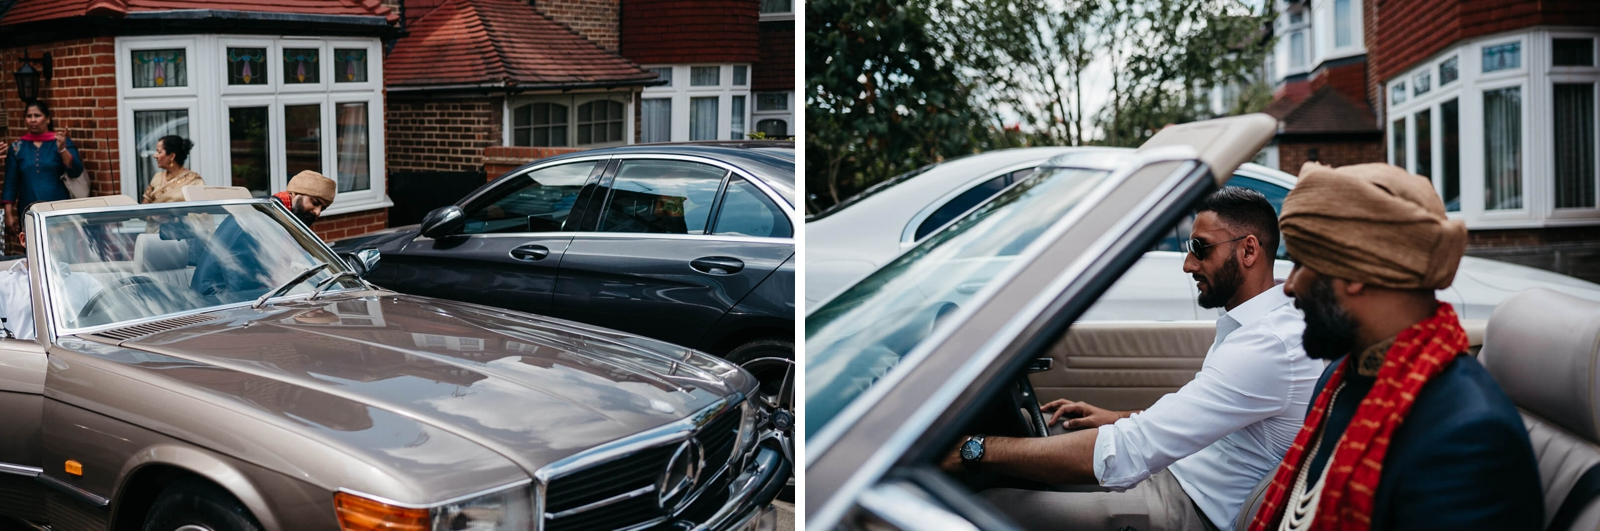 groom leaving in convertible mercedes wedding car in London